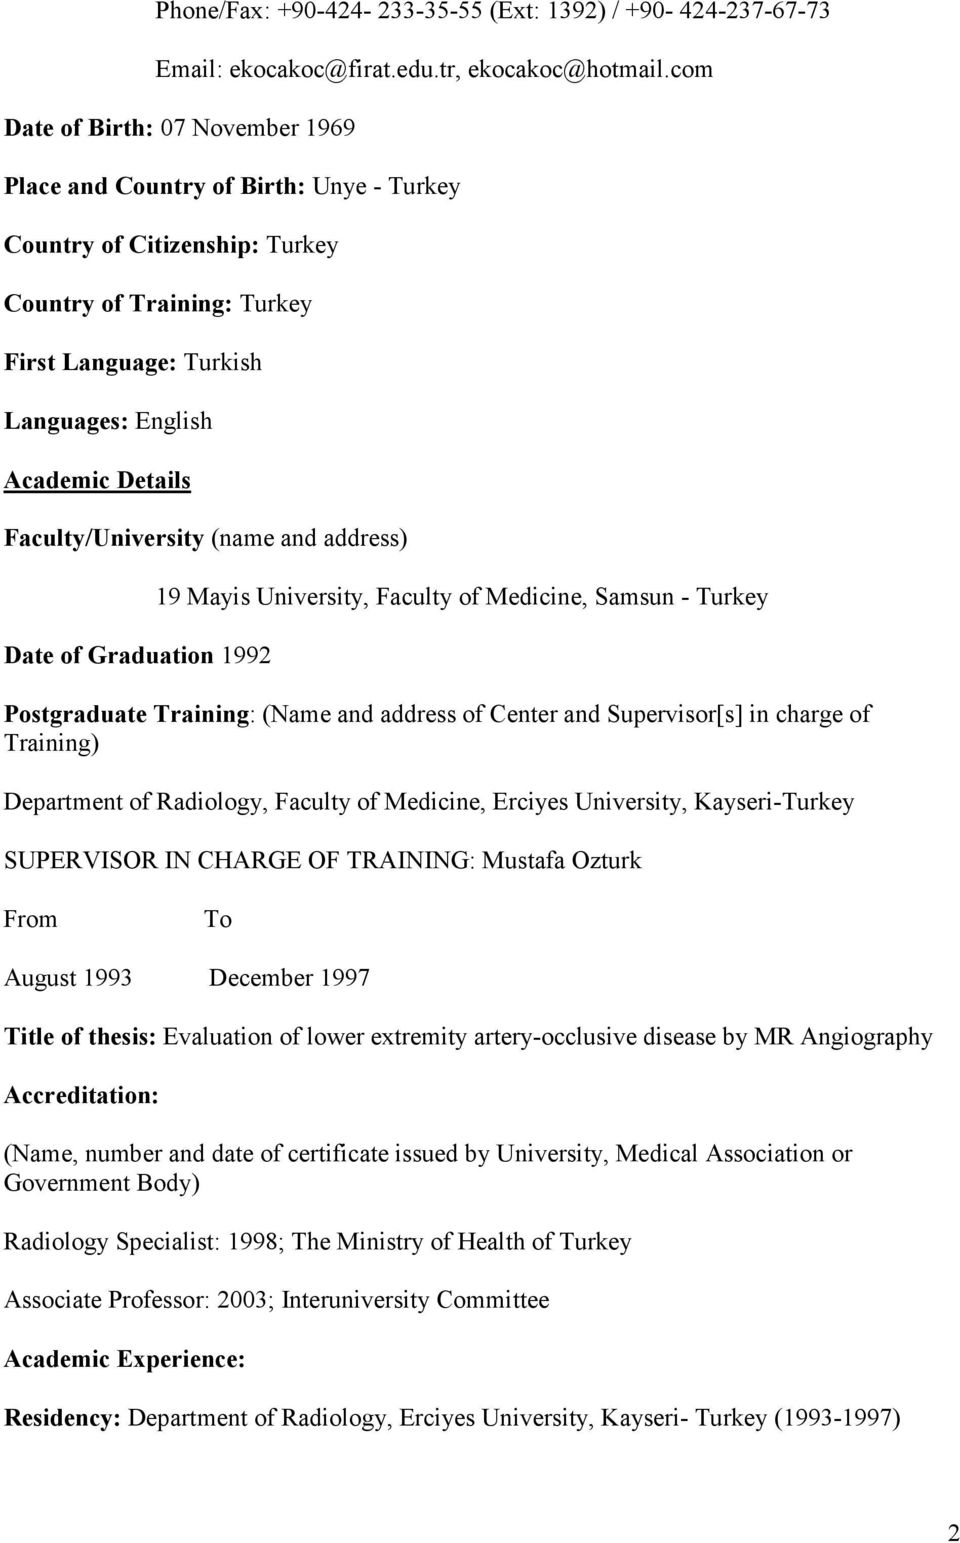 Faculty/University (name and address) Date of Graduation 1992 19 Mayis University, Faculty of Medicine, Samsun - Turkey Postgraduate Training: (Name and address of Center and Supervisor[s] in charge